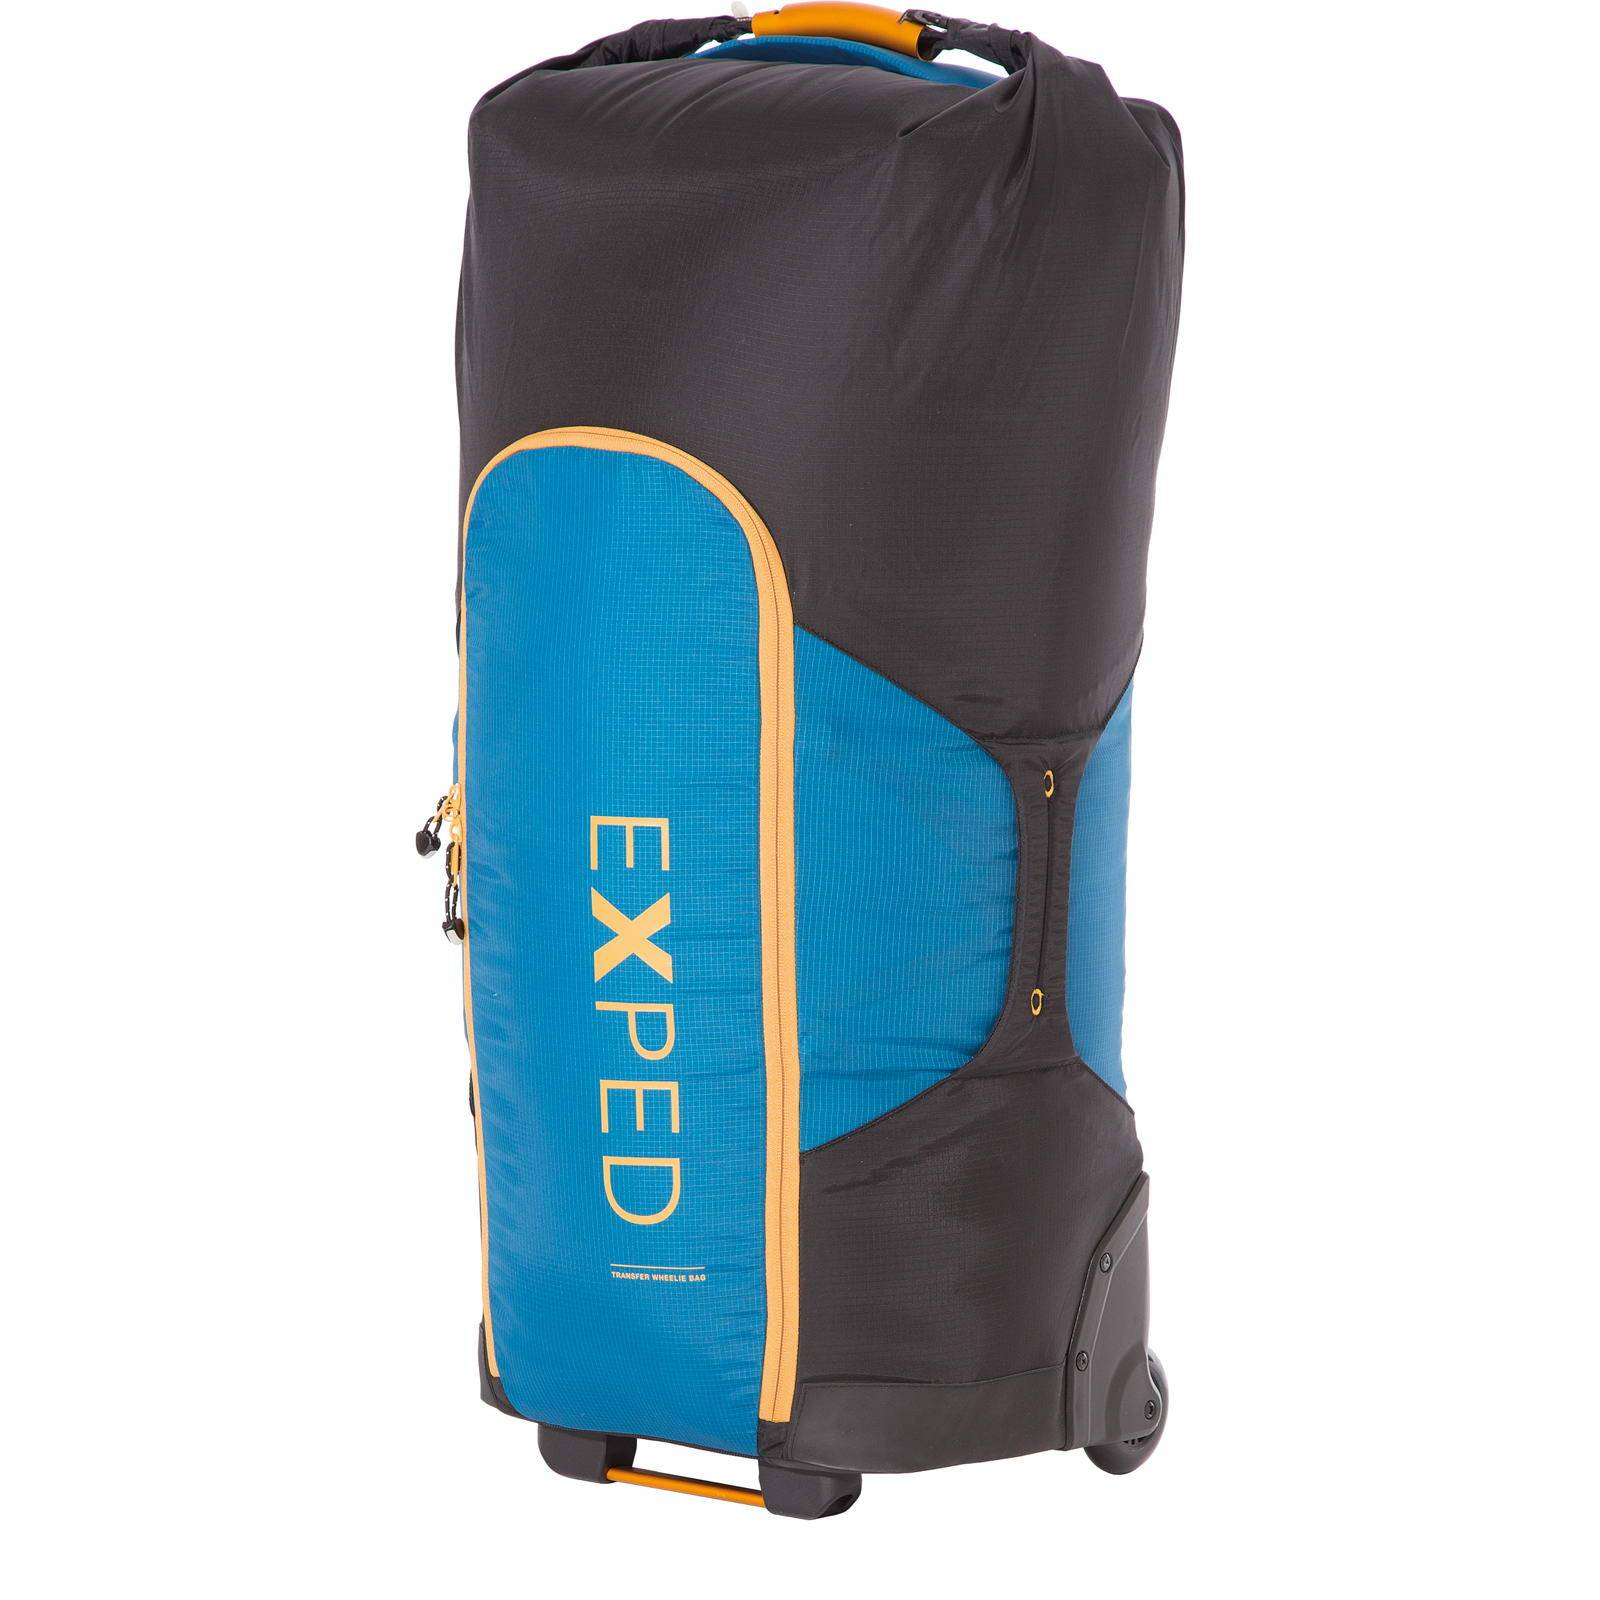 EXPED Transfer Wheelie Bag - Rucksackhülle auf Rädern sea blue-black